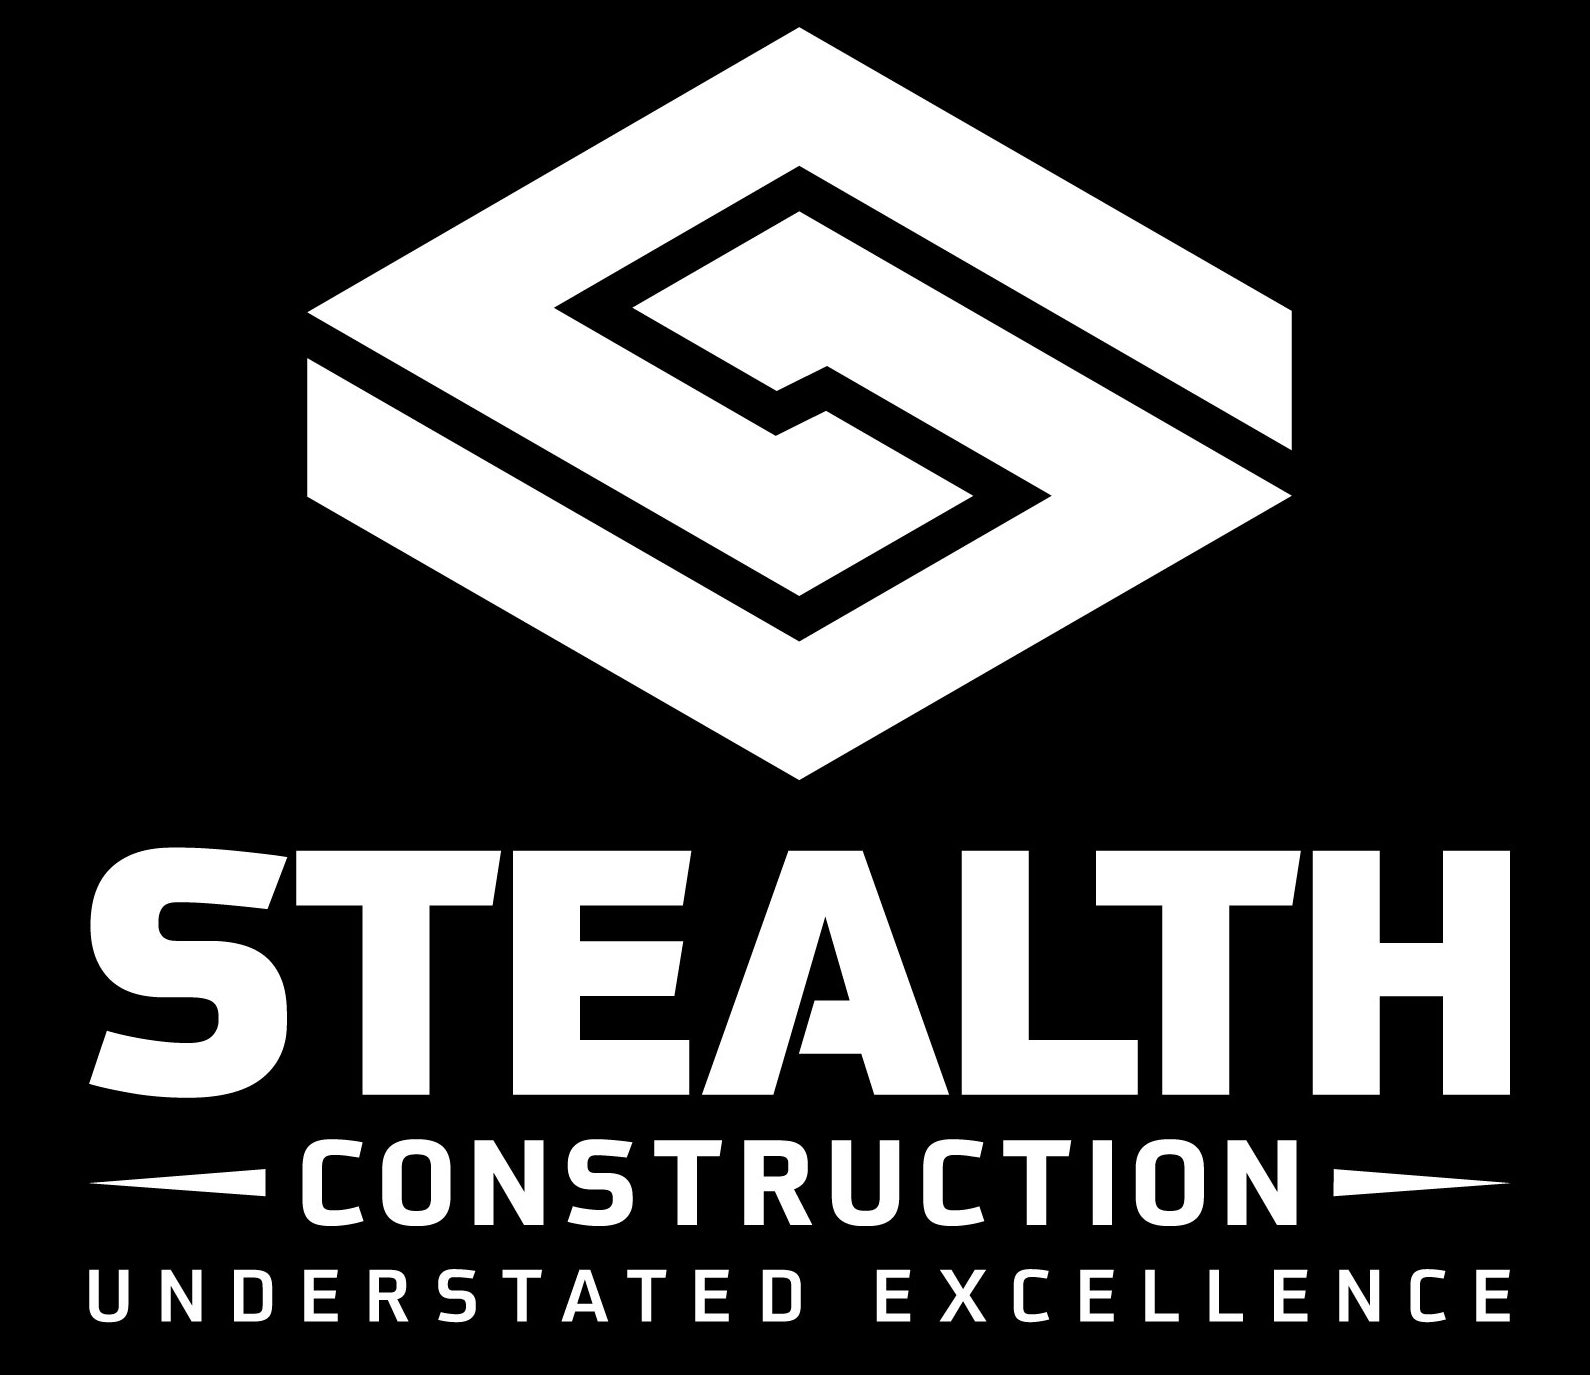 cropped-stealth-construction-logo2.jpg